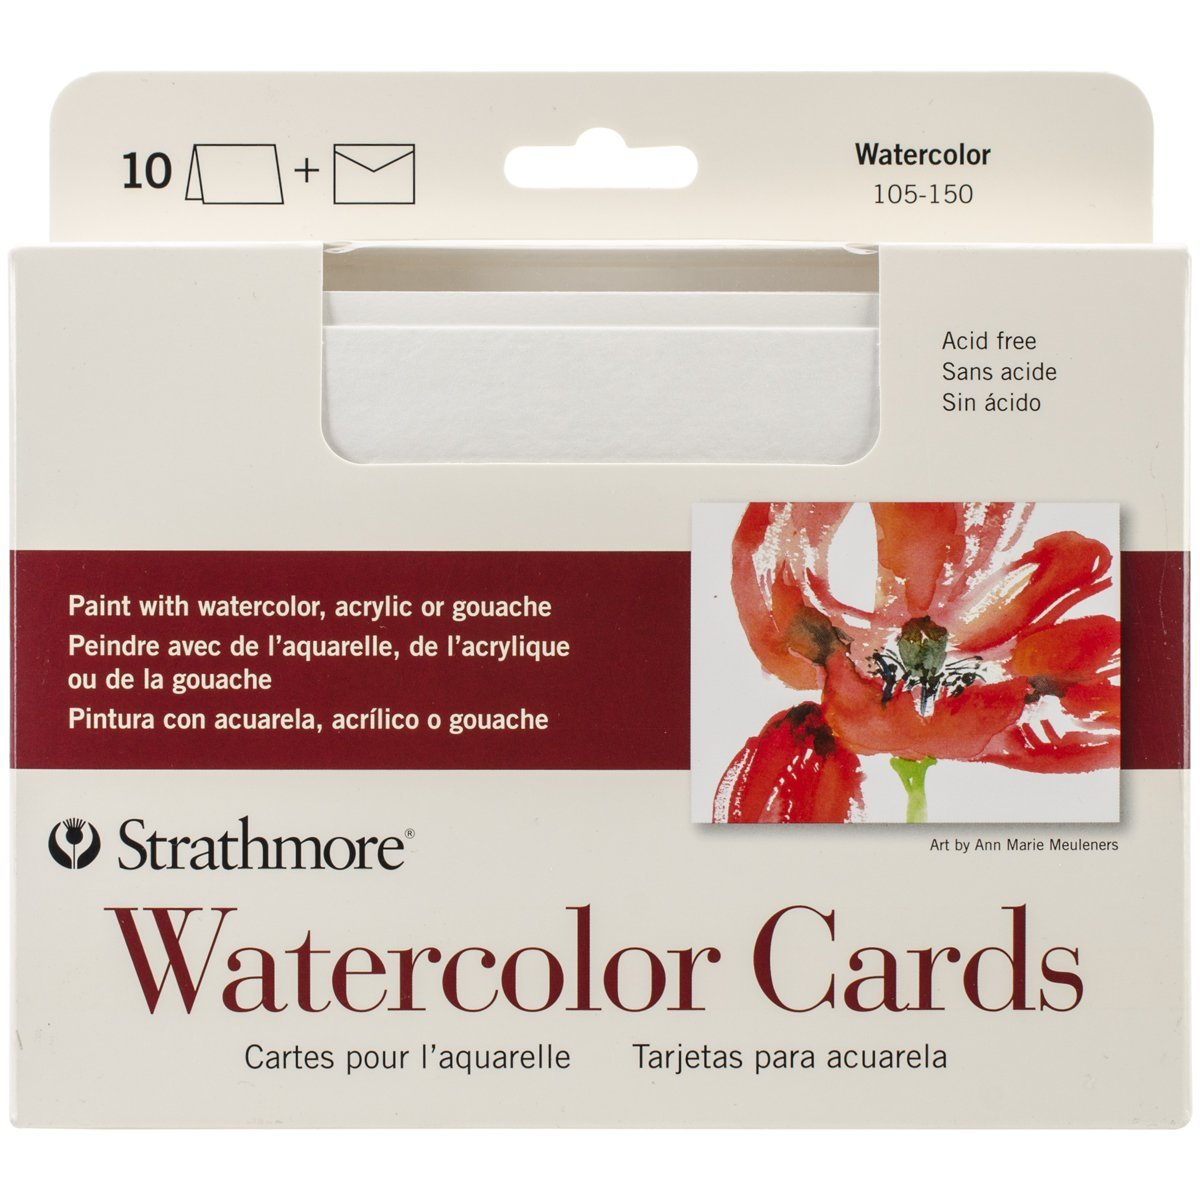 Watercolor Cards for Brush Calligraphy